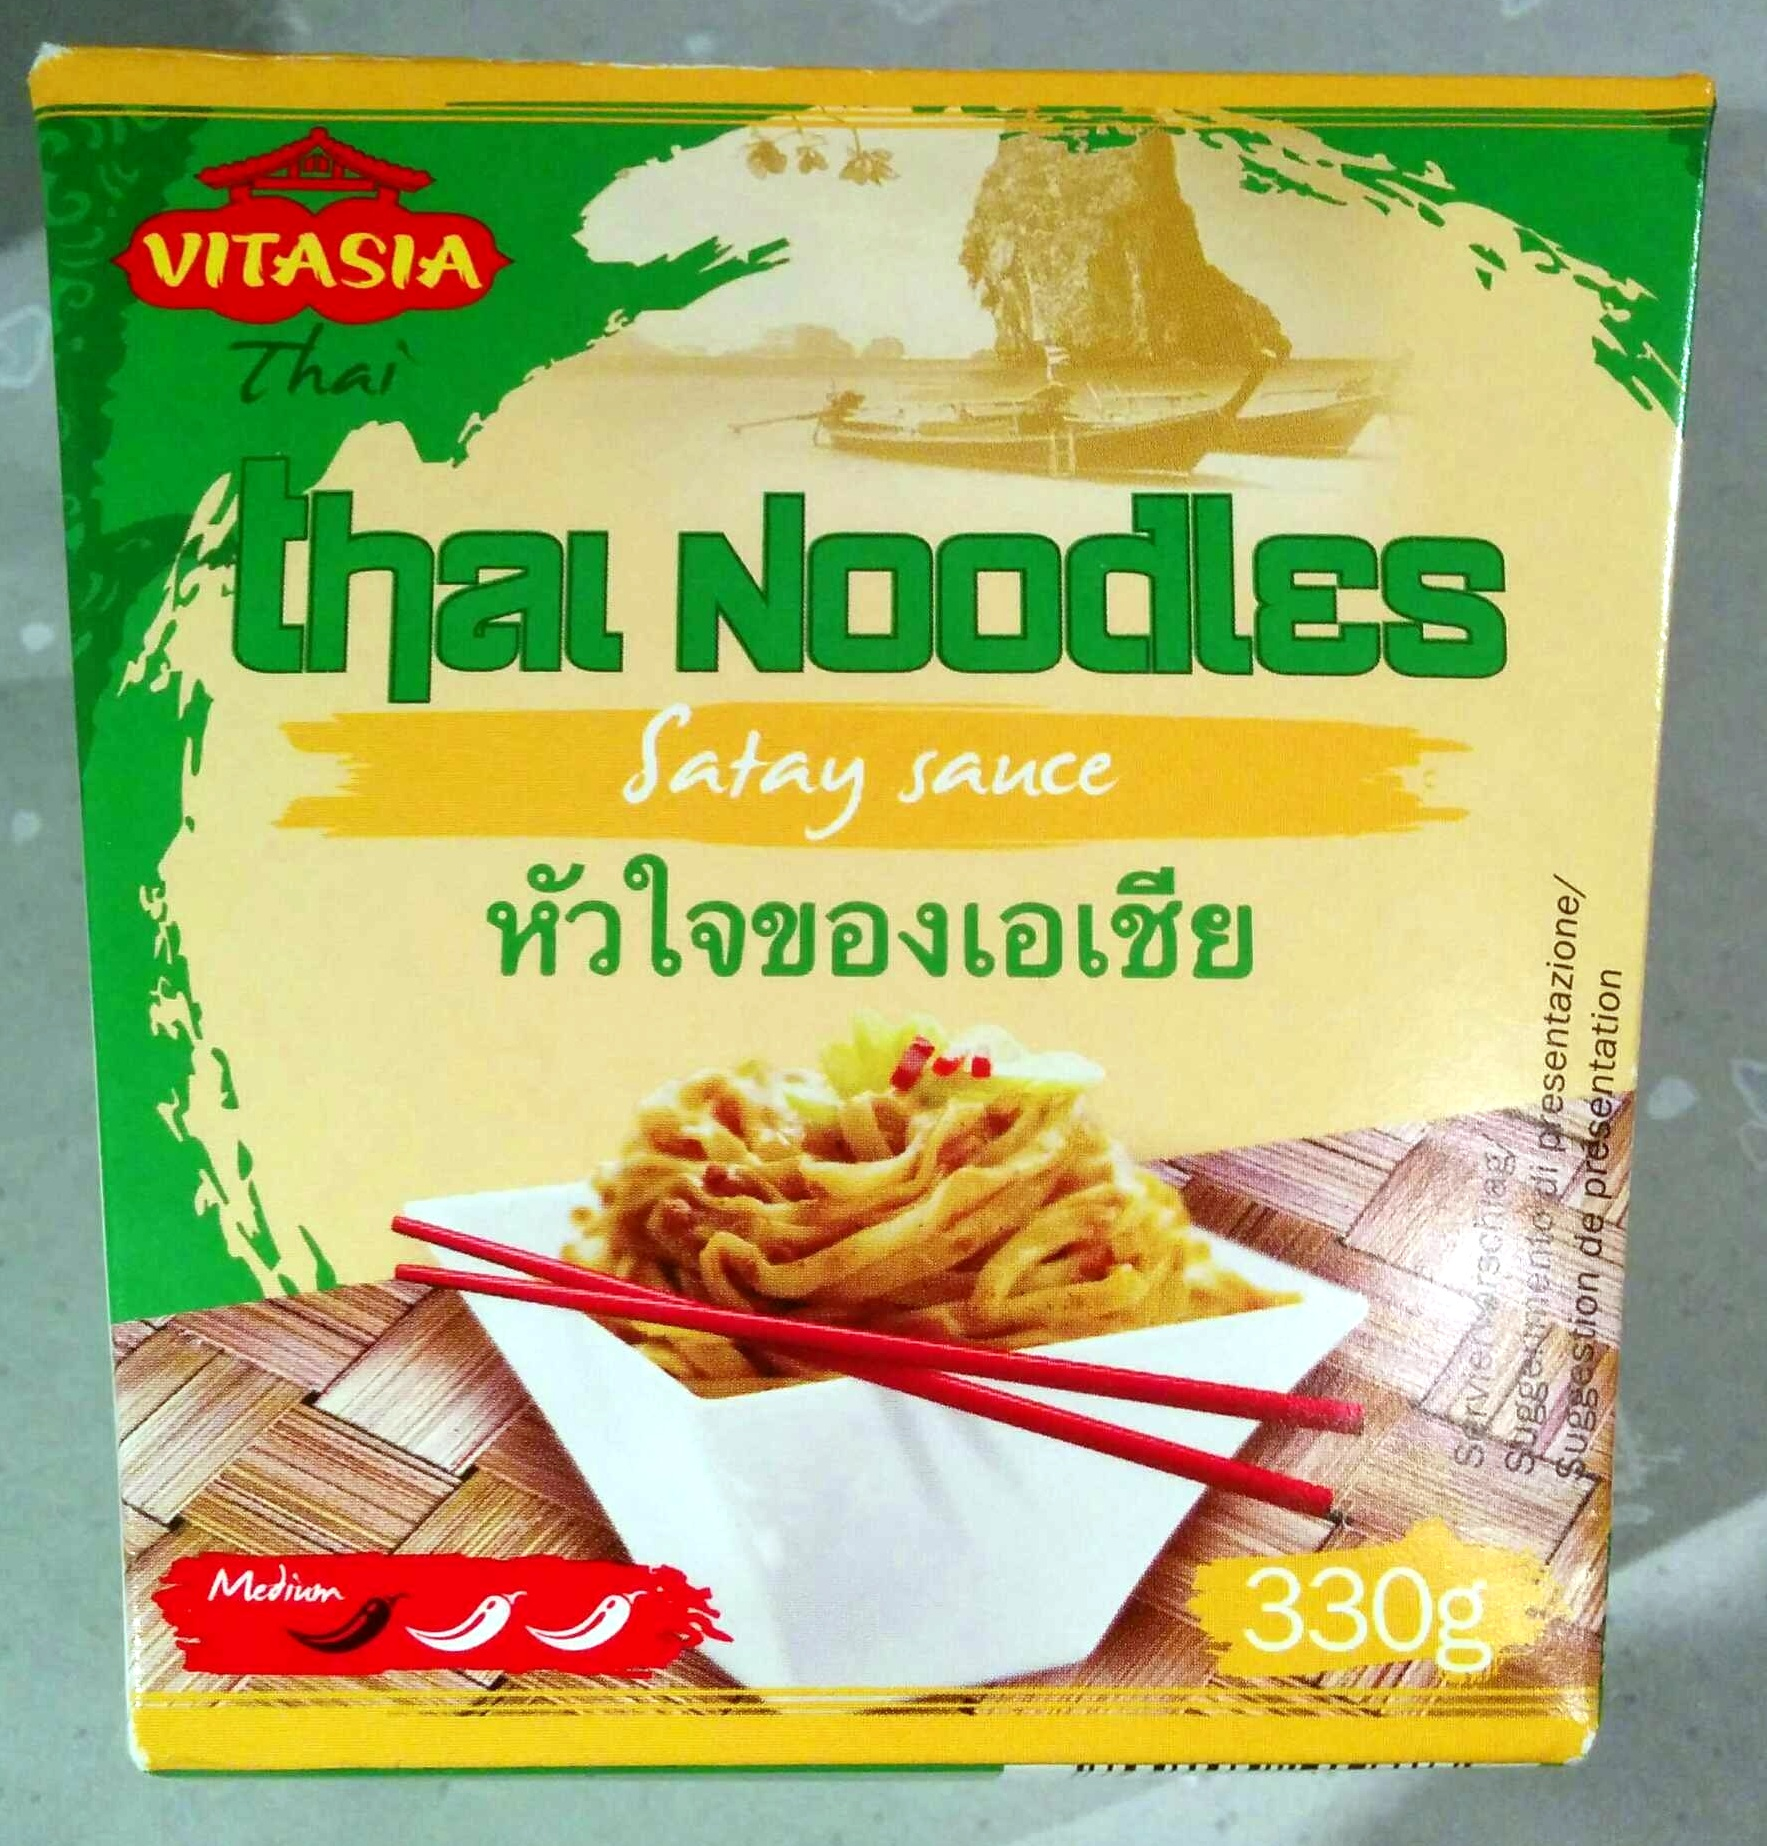 Mild heat thai noodles with satay sauce, mild - Producto